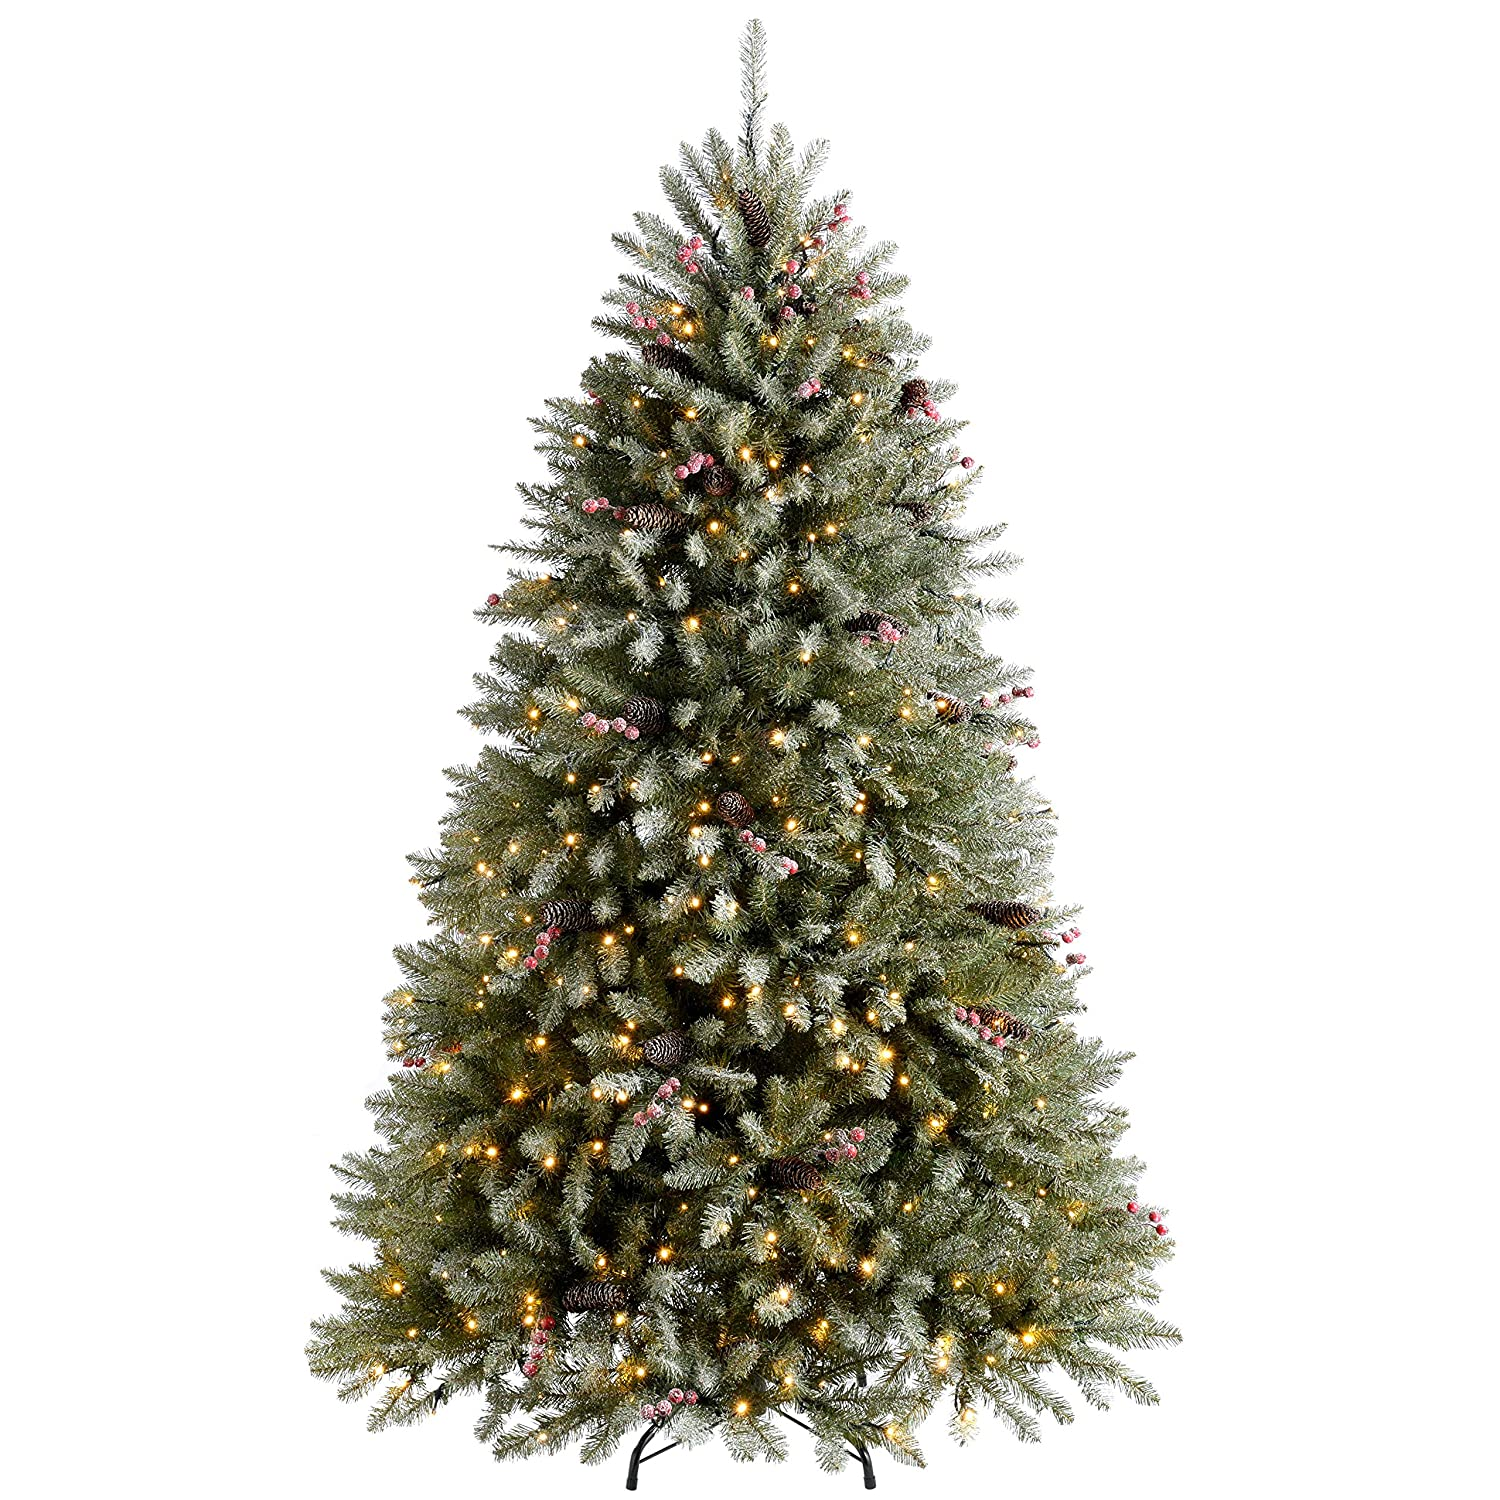 Werchristmas Pre Lit Decorated Snow Flocked Christmas Tree With 600 Warm White Led Lights Green White 7 Feet 2 1 M